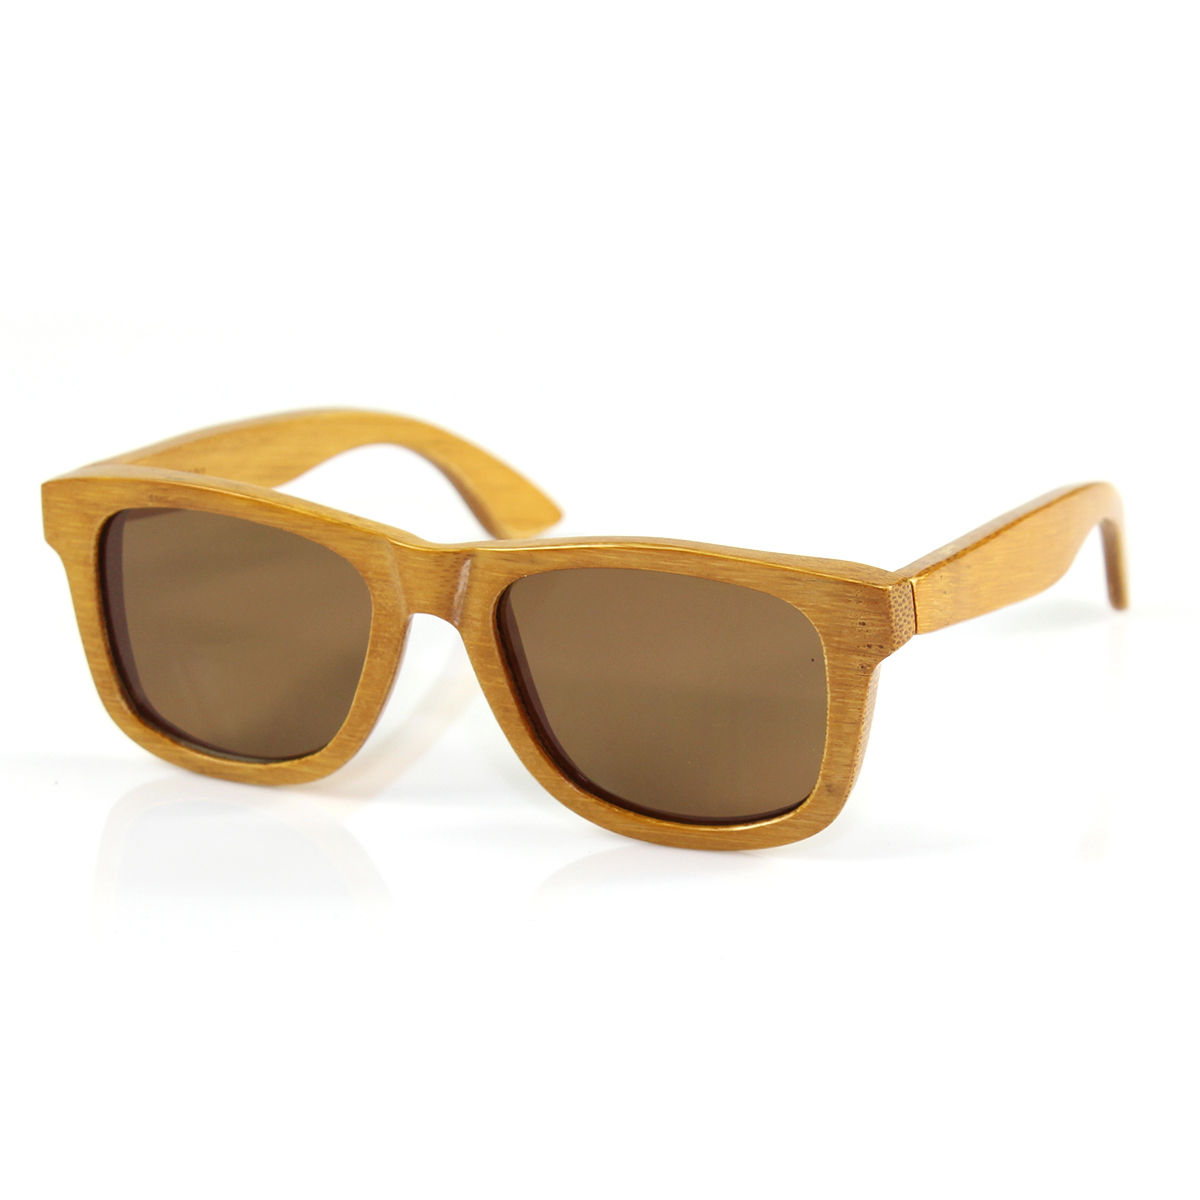 Bamboo Sunglasses Polarized Wooden frame Glasses Outdoor ...